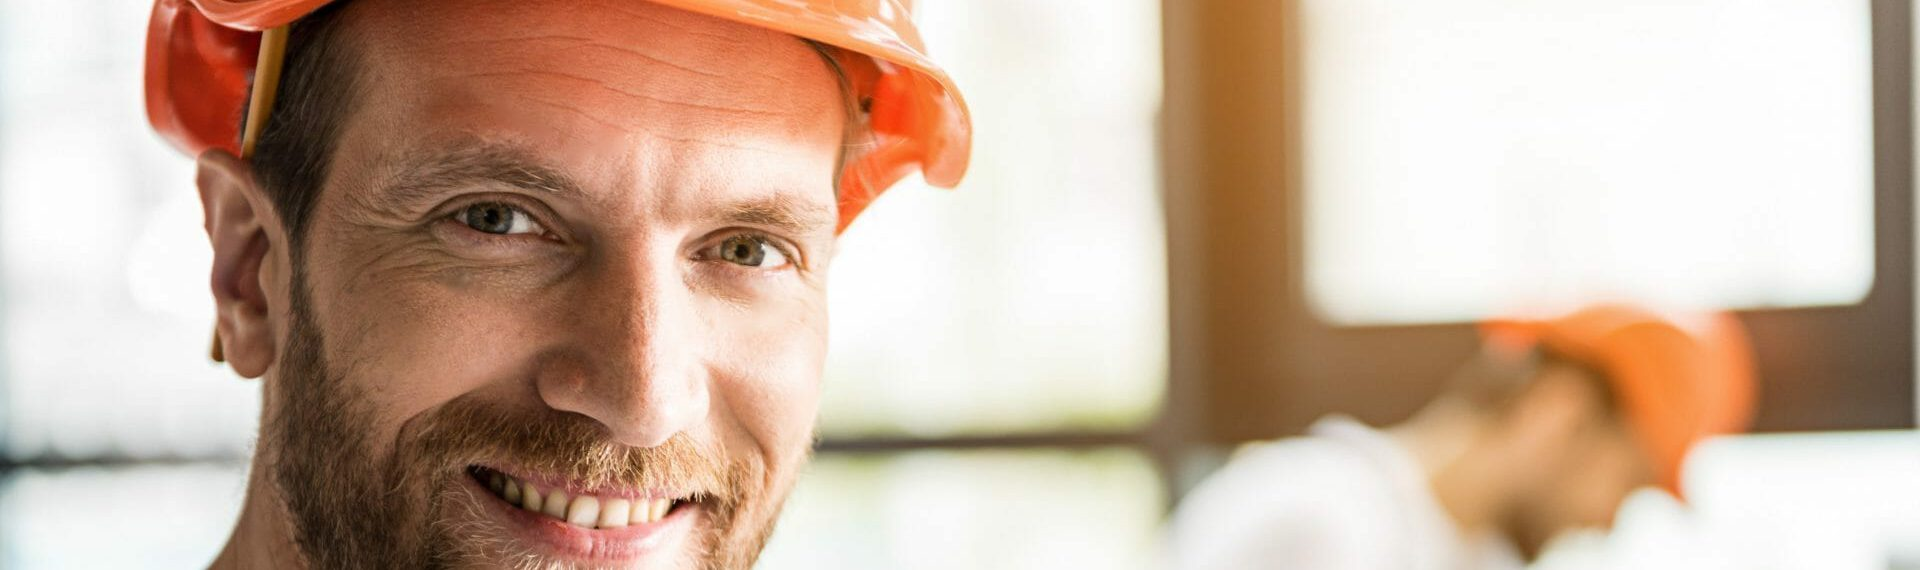 Four traits to look for when hiring subcontractors